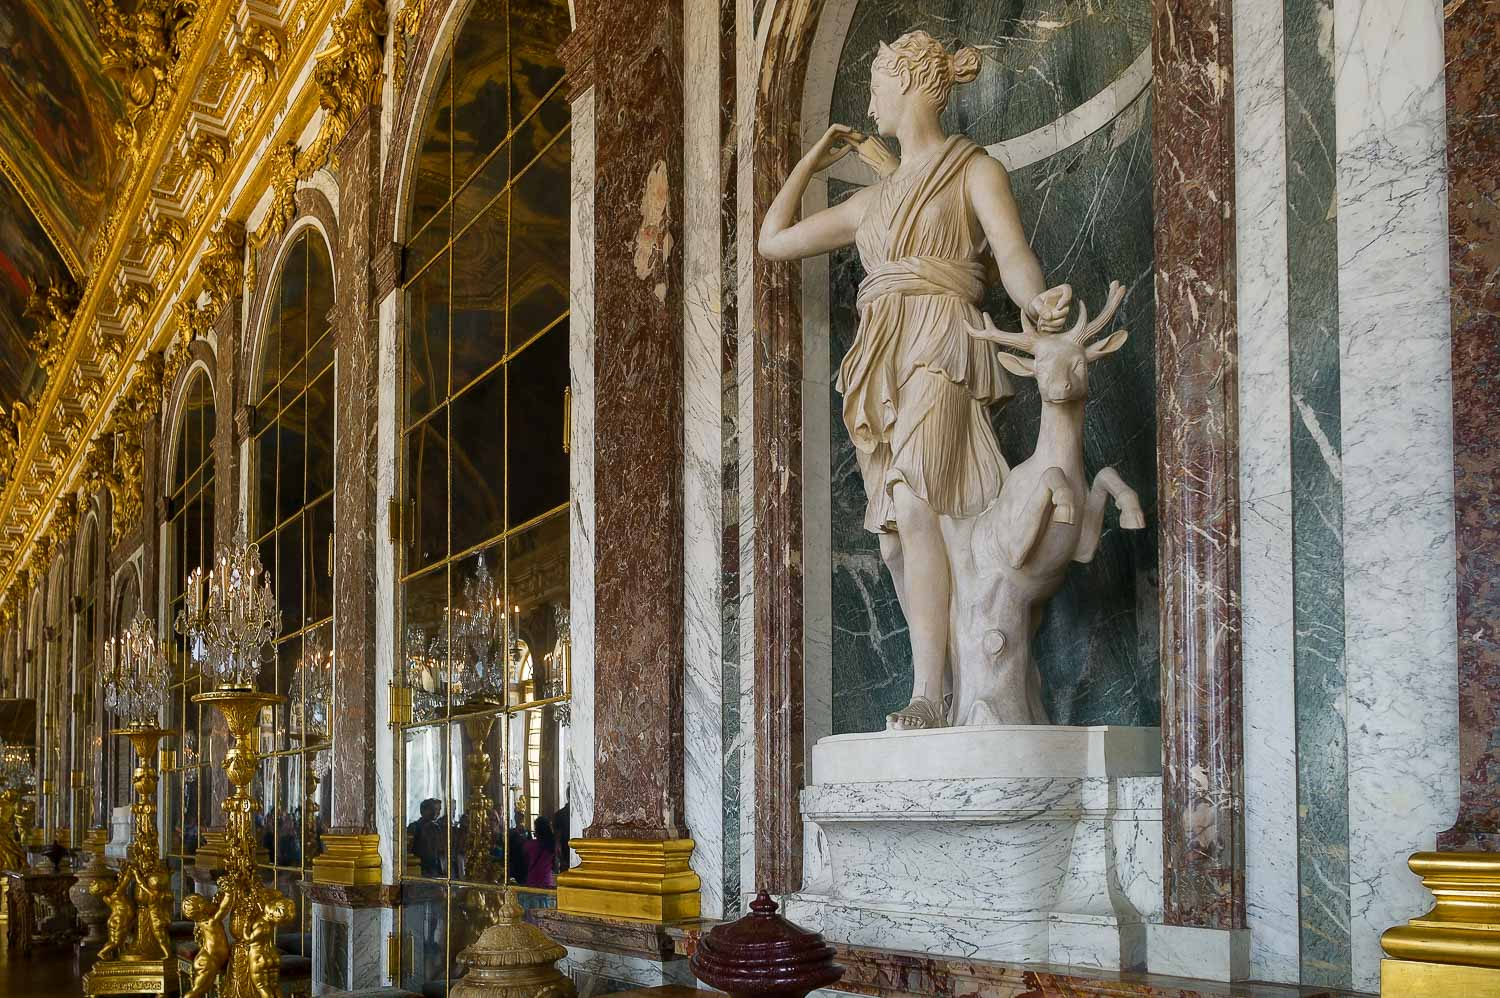 A statue in one of the magnificent rooms at the Palace of Versailles, France